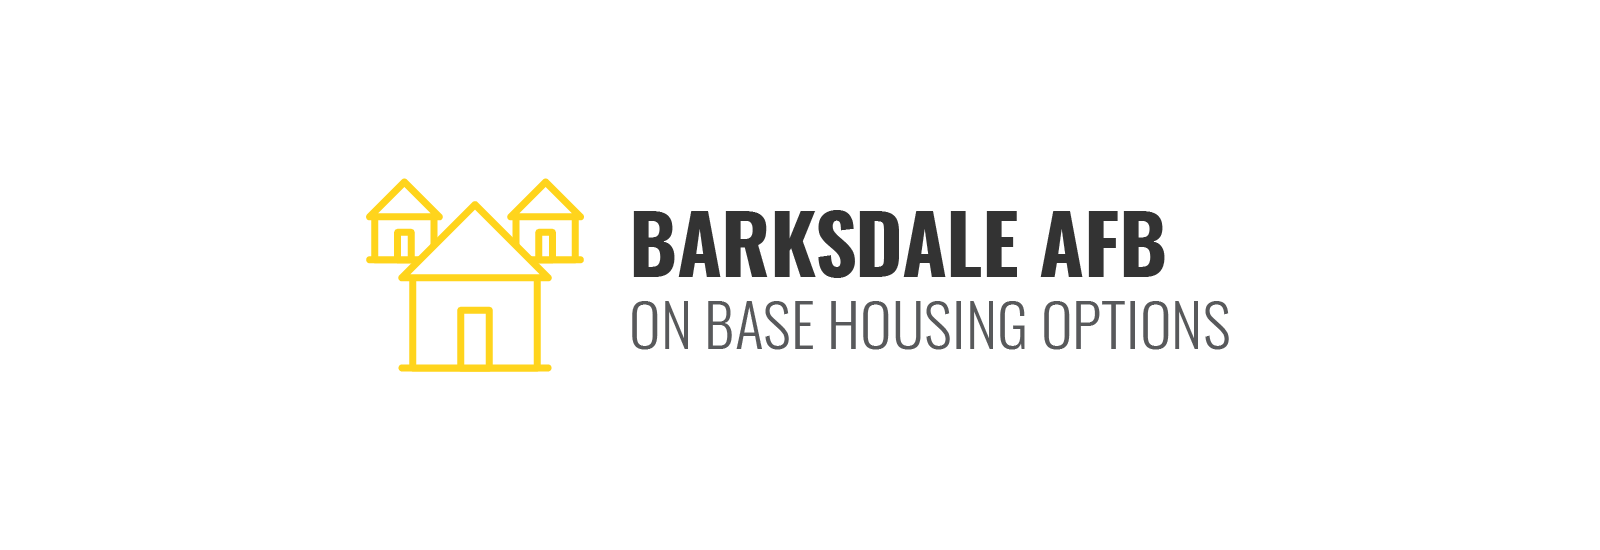 Barksdale AFB On-Base Housing Options